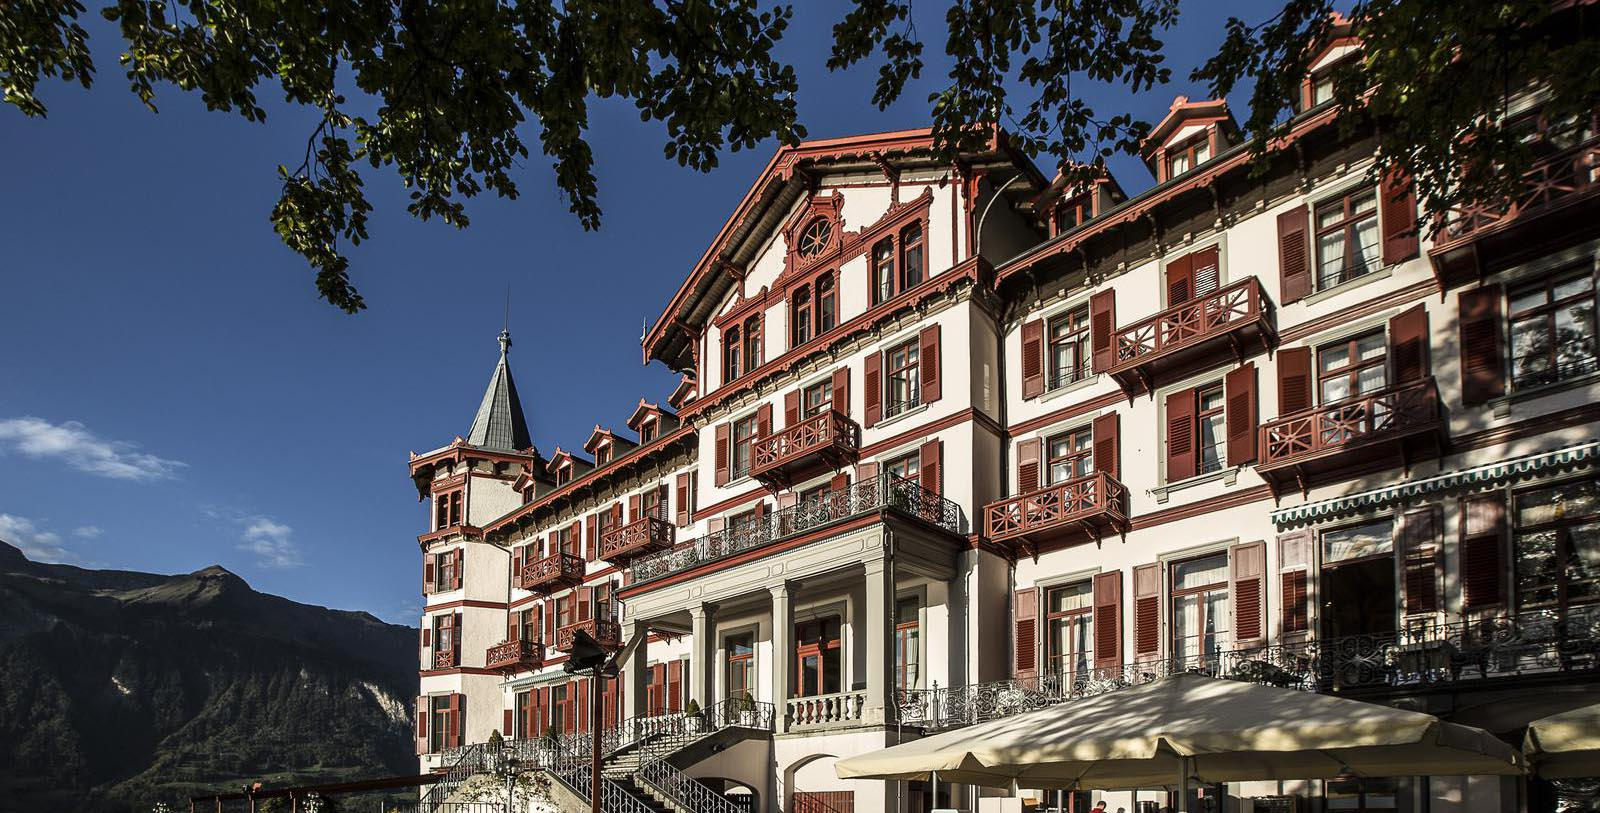 Image of Hotel Exterior, Grandhotel Giessbach, Brienz, Switzerland, 1822, Member of Historic Hotels Worldwide, Overview